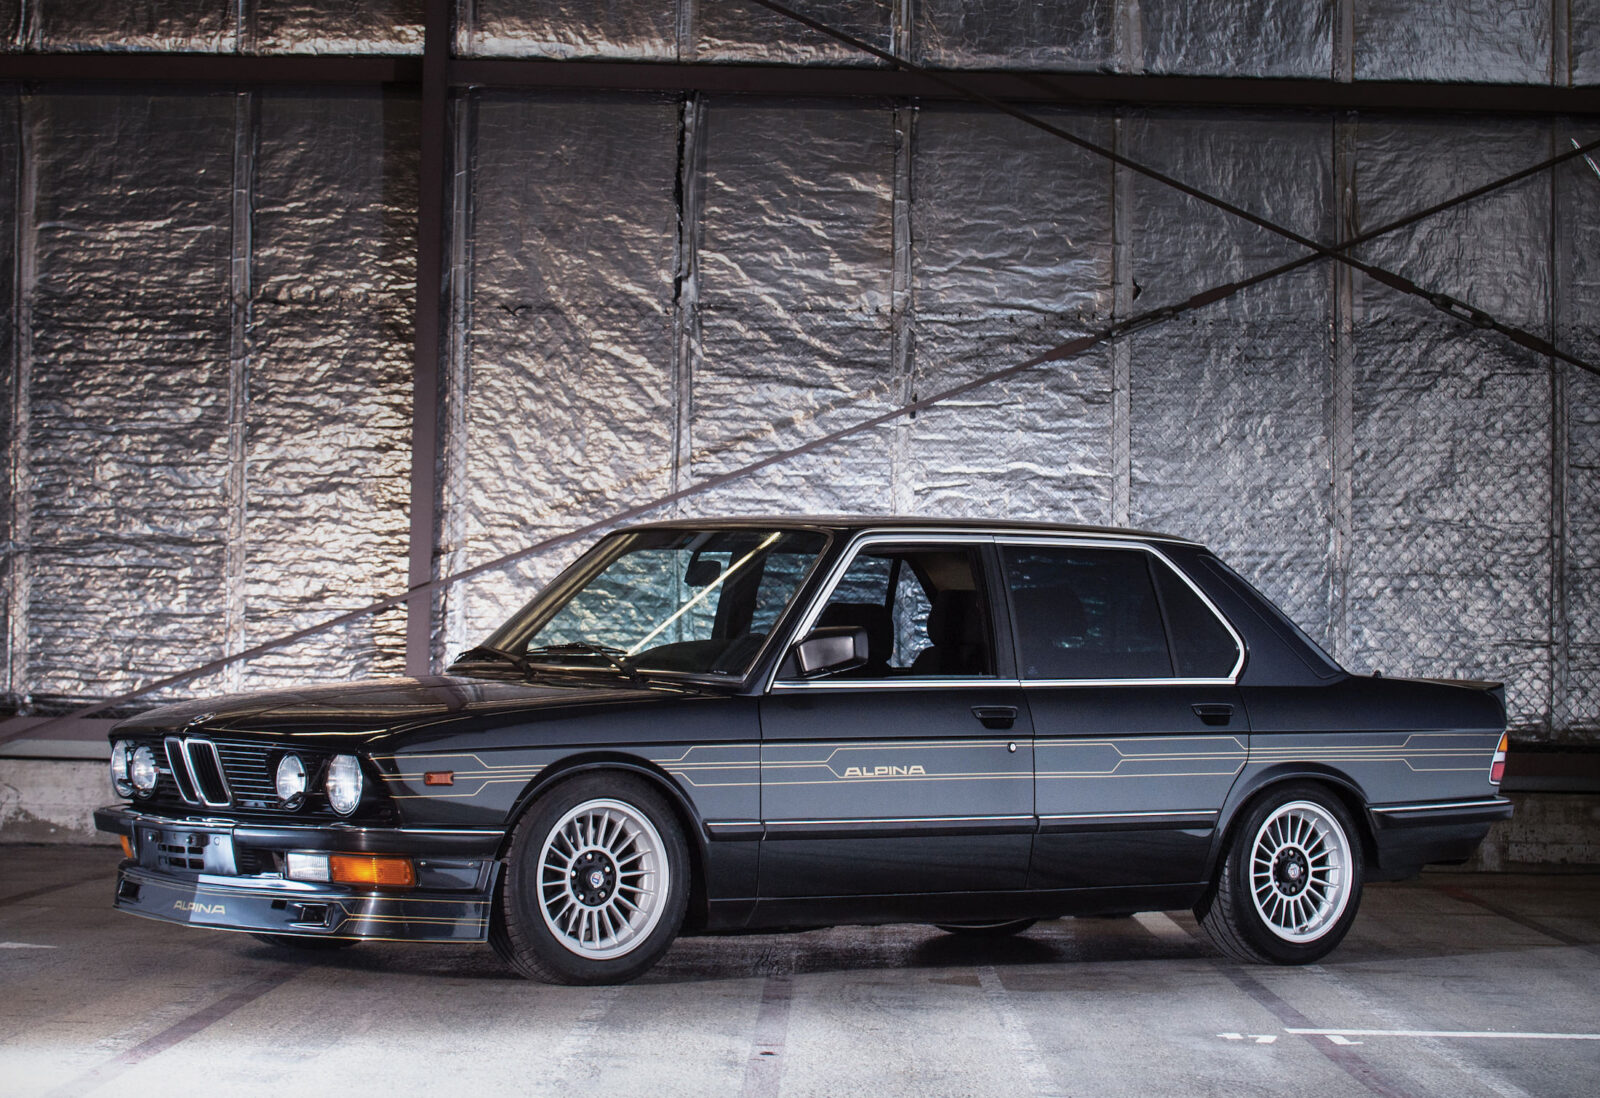 1986 BMW Alpina B7 Turbo / 1 - The Fastest Four Door Car In The World in 1986